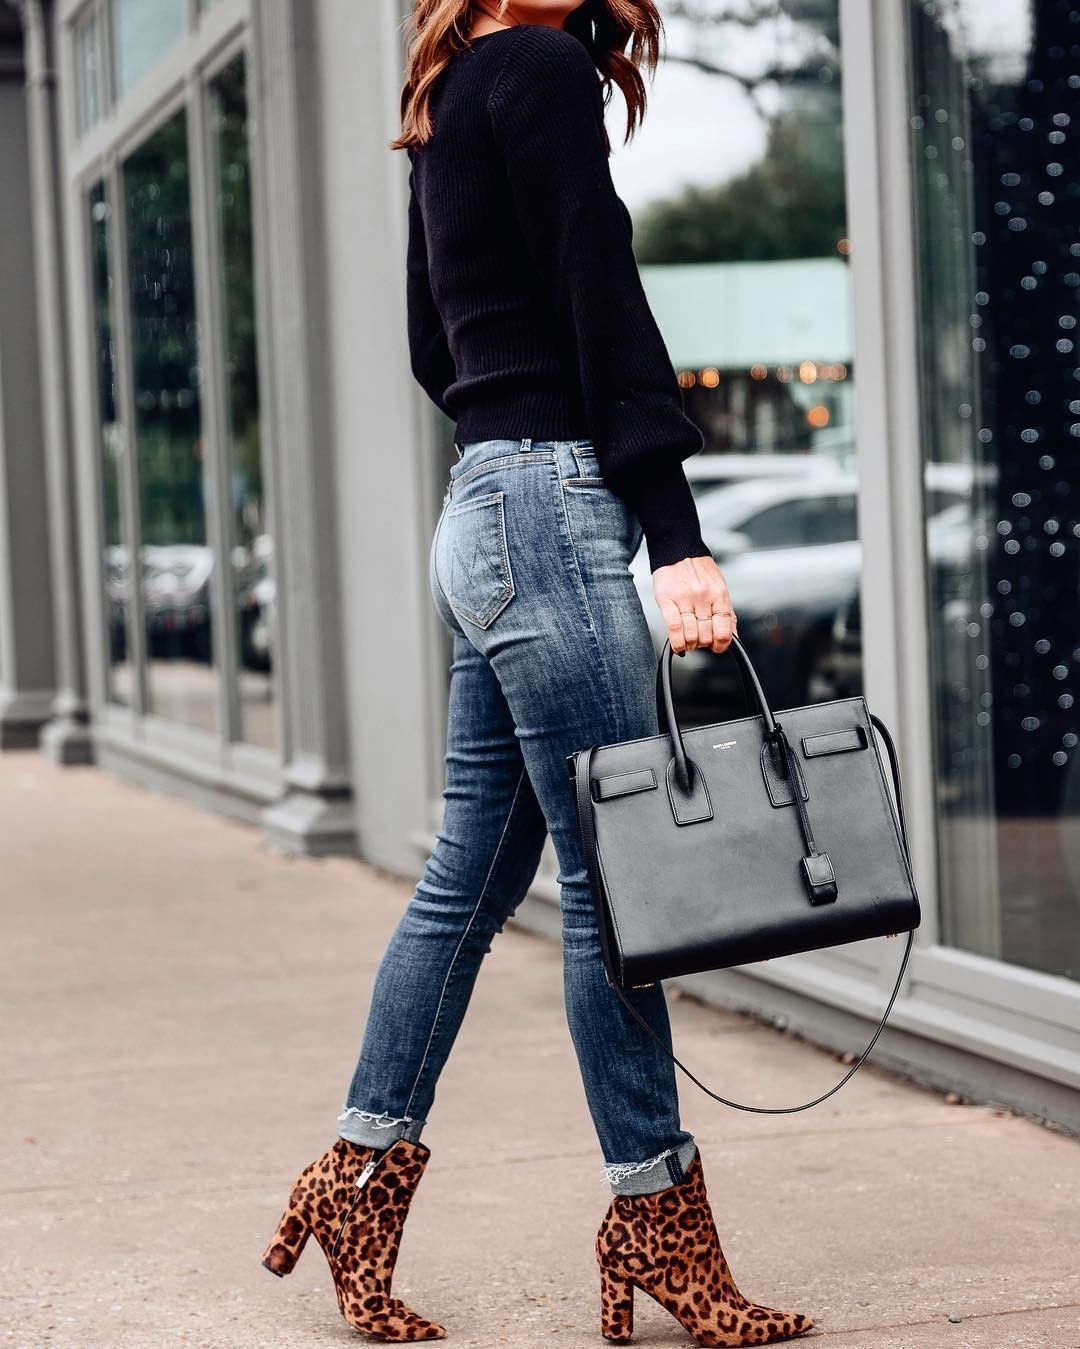 Shop @aloprofile's pop of leopard print and classic denim combo, plus more #liketkit outfit inspo, instantly via screenshot when you… #leopardshoesoutfit